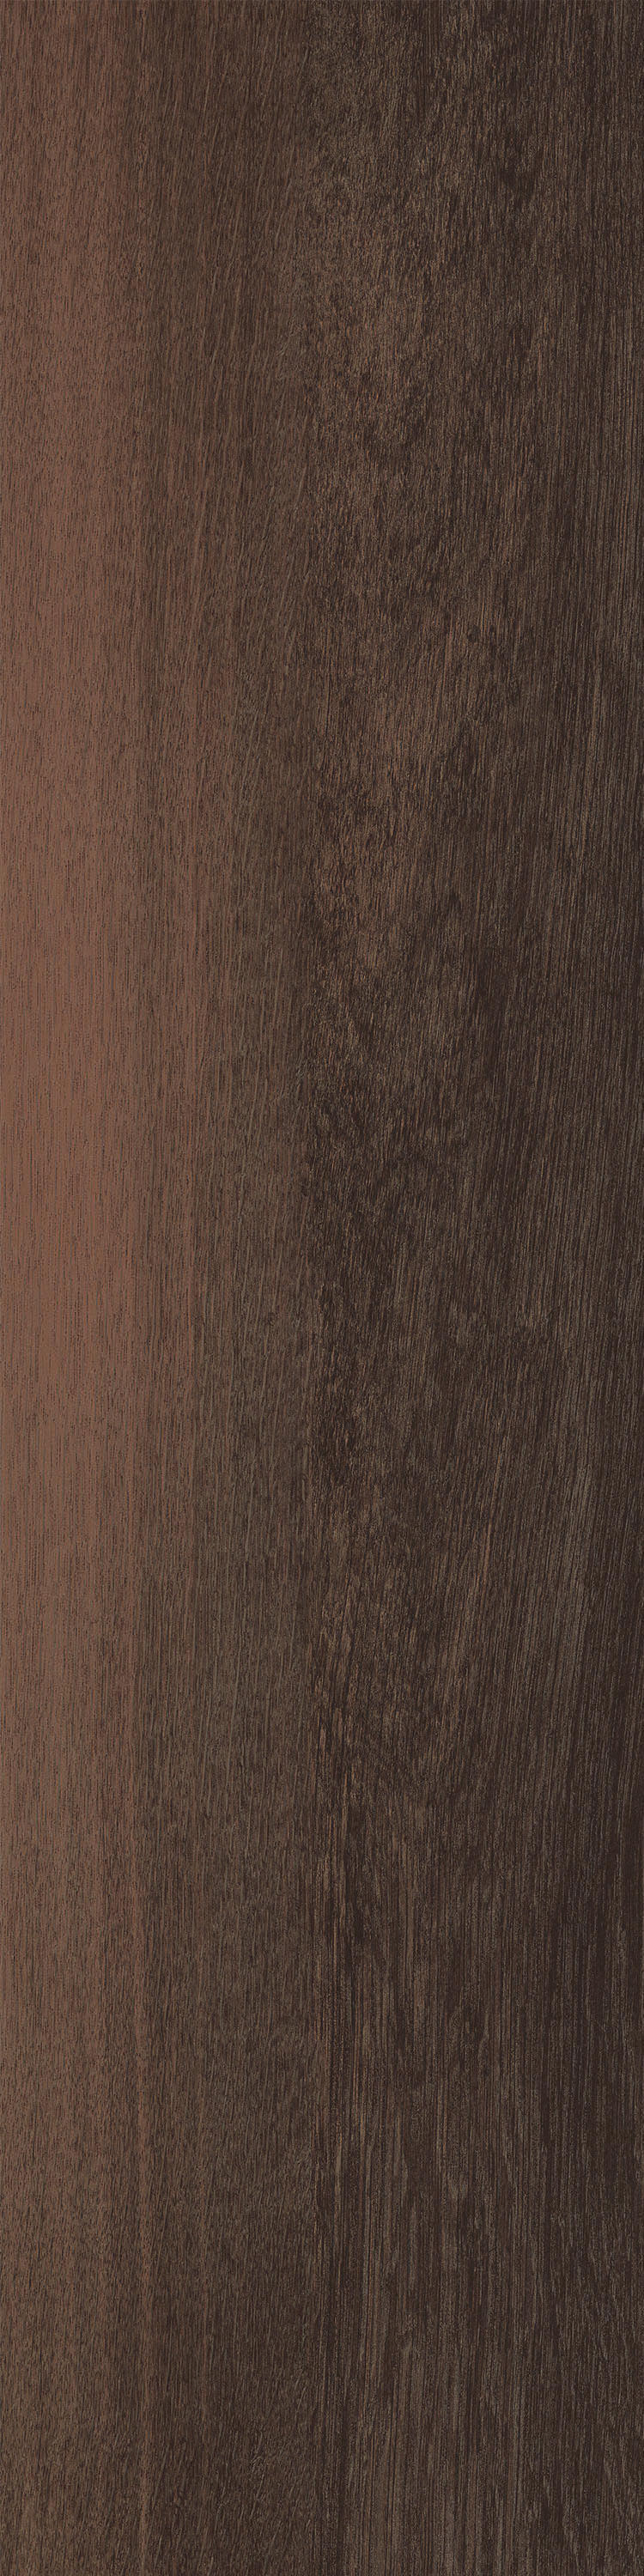 Level Set Natural Woodgrains A00201 Black Walnut